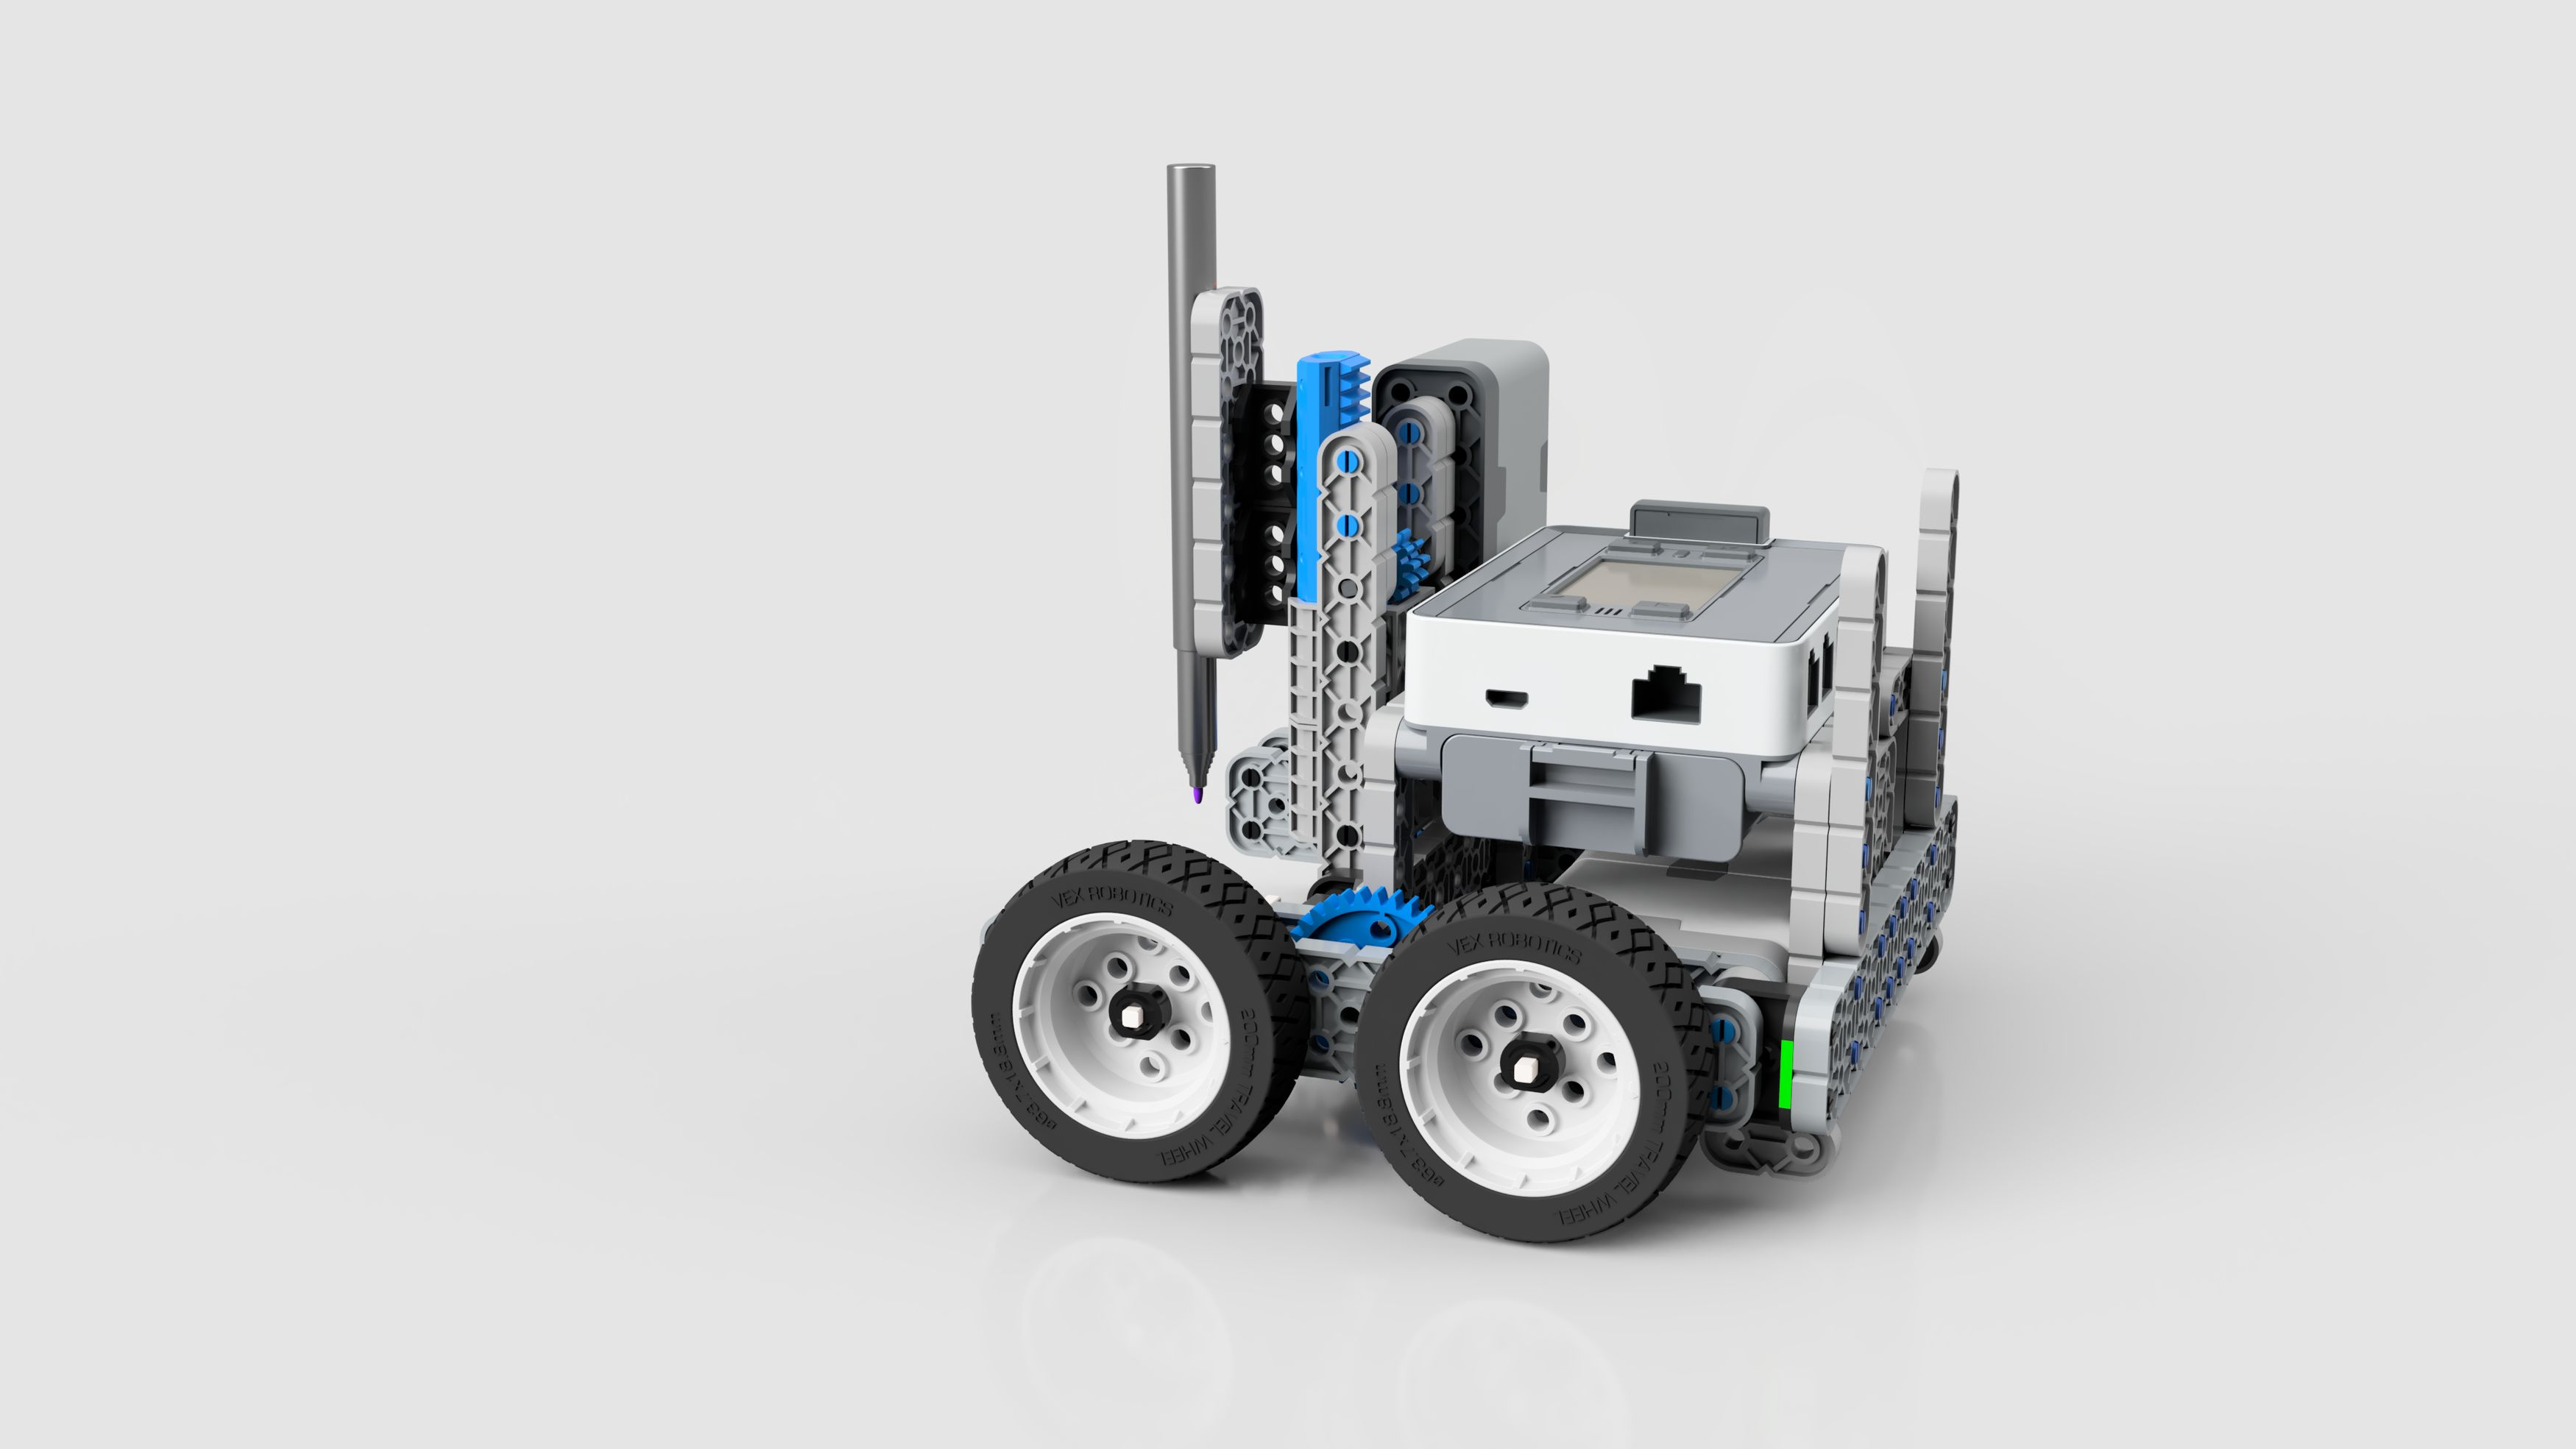 Vex-iq-robot-caneta-2020-may-21-06-22-37pm-000-customizedview36717265265-png-3500-3500